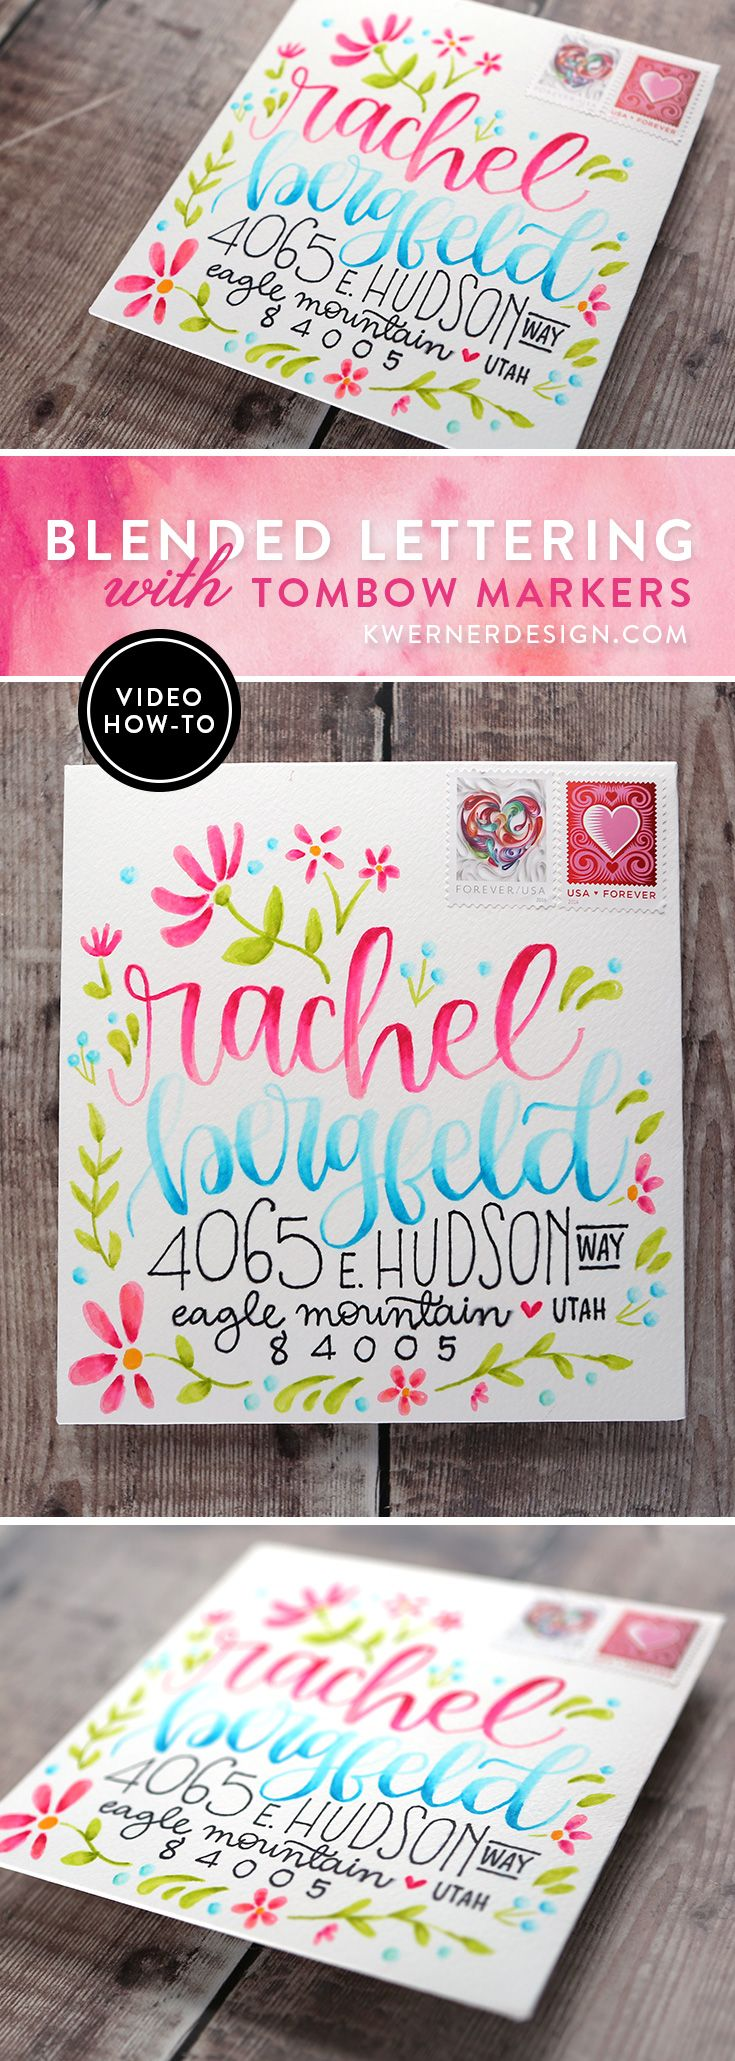 Blended Lettering with Tombow Markers